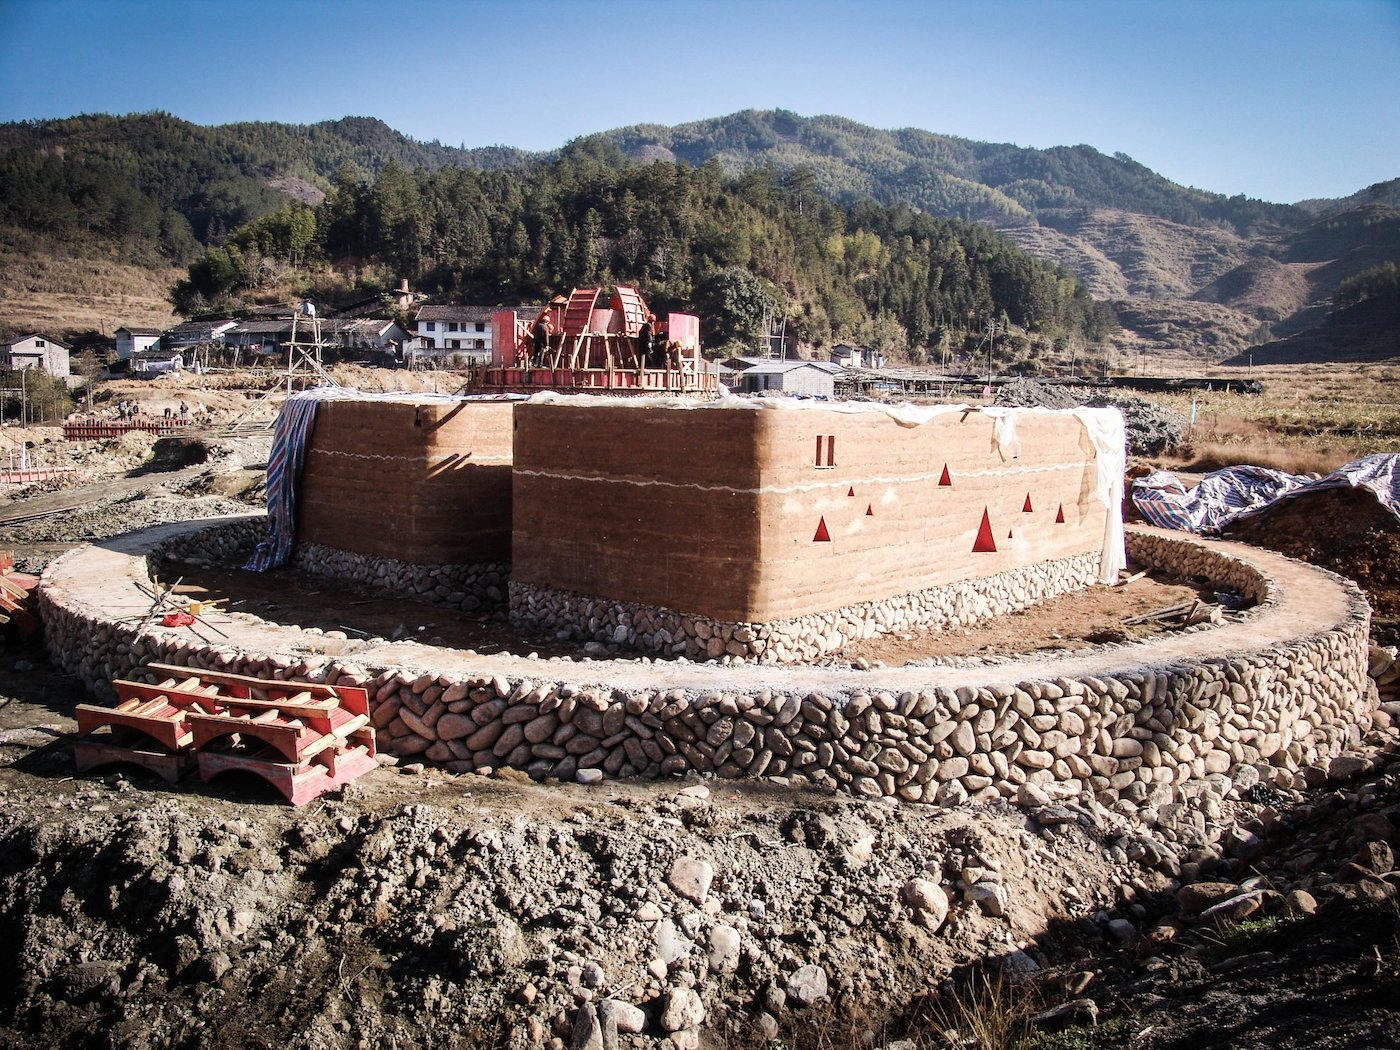 Rammed earth and stone building in construction